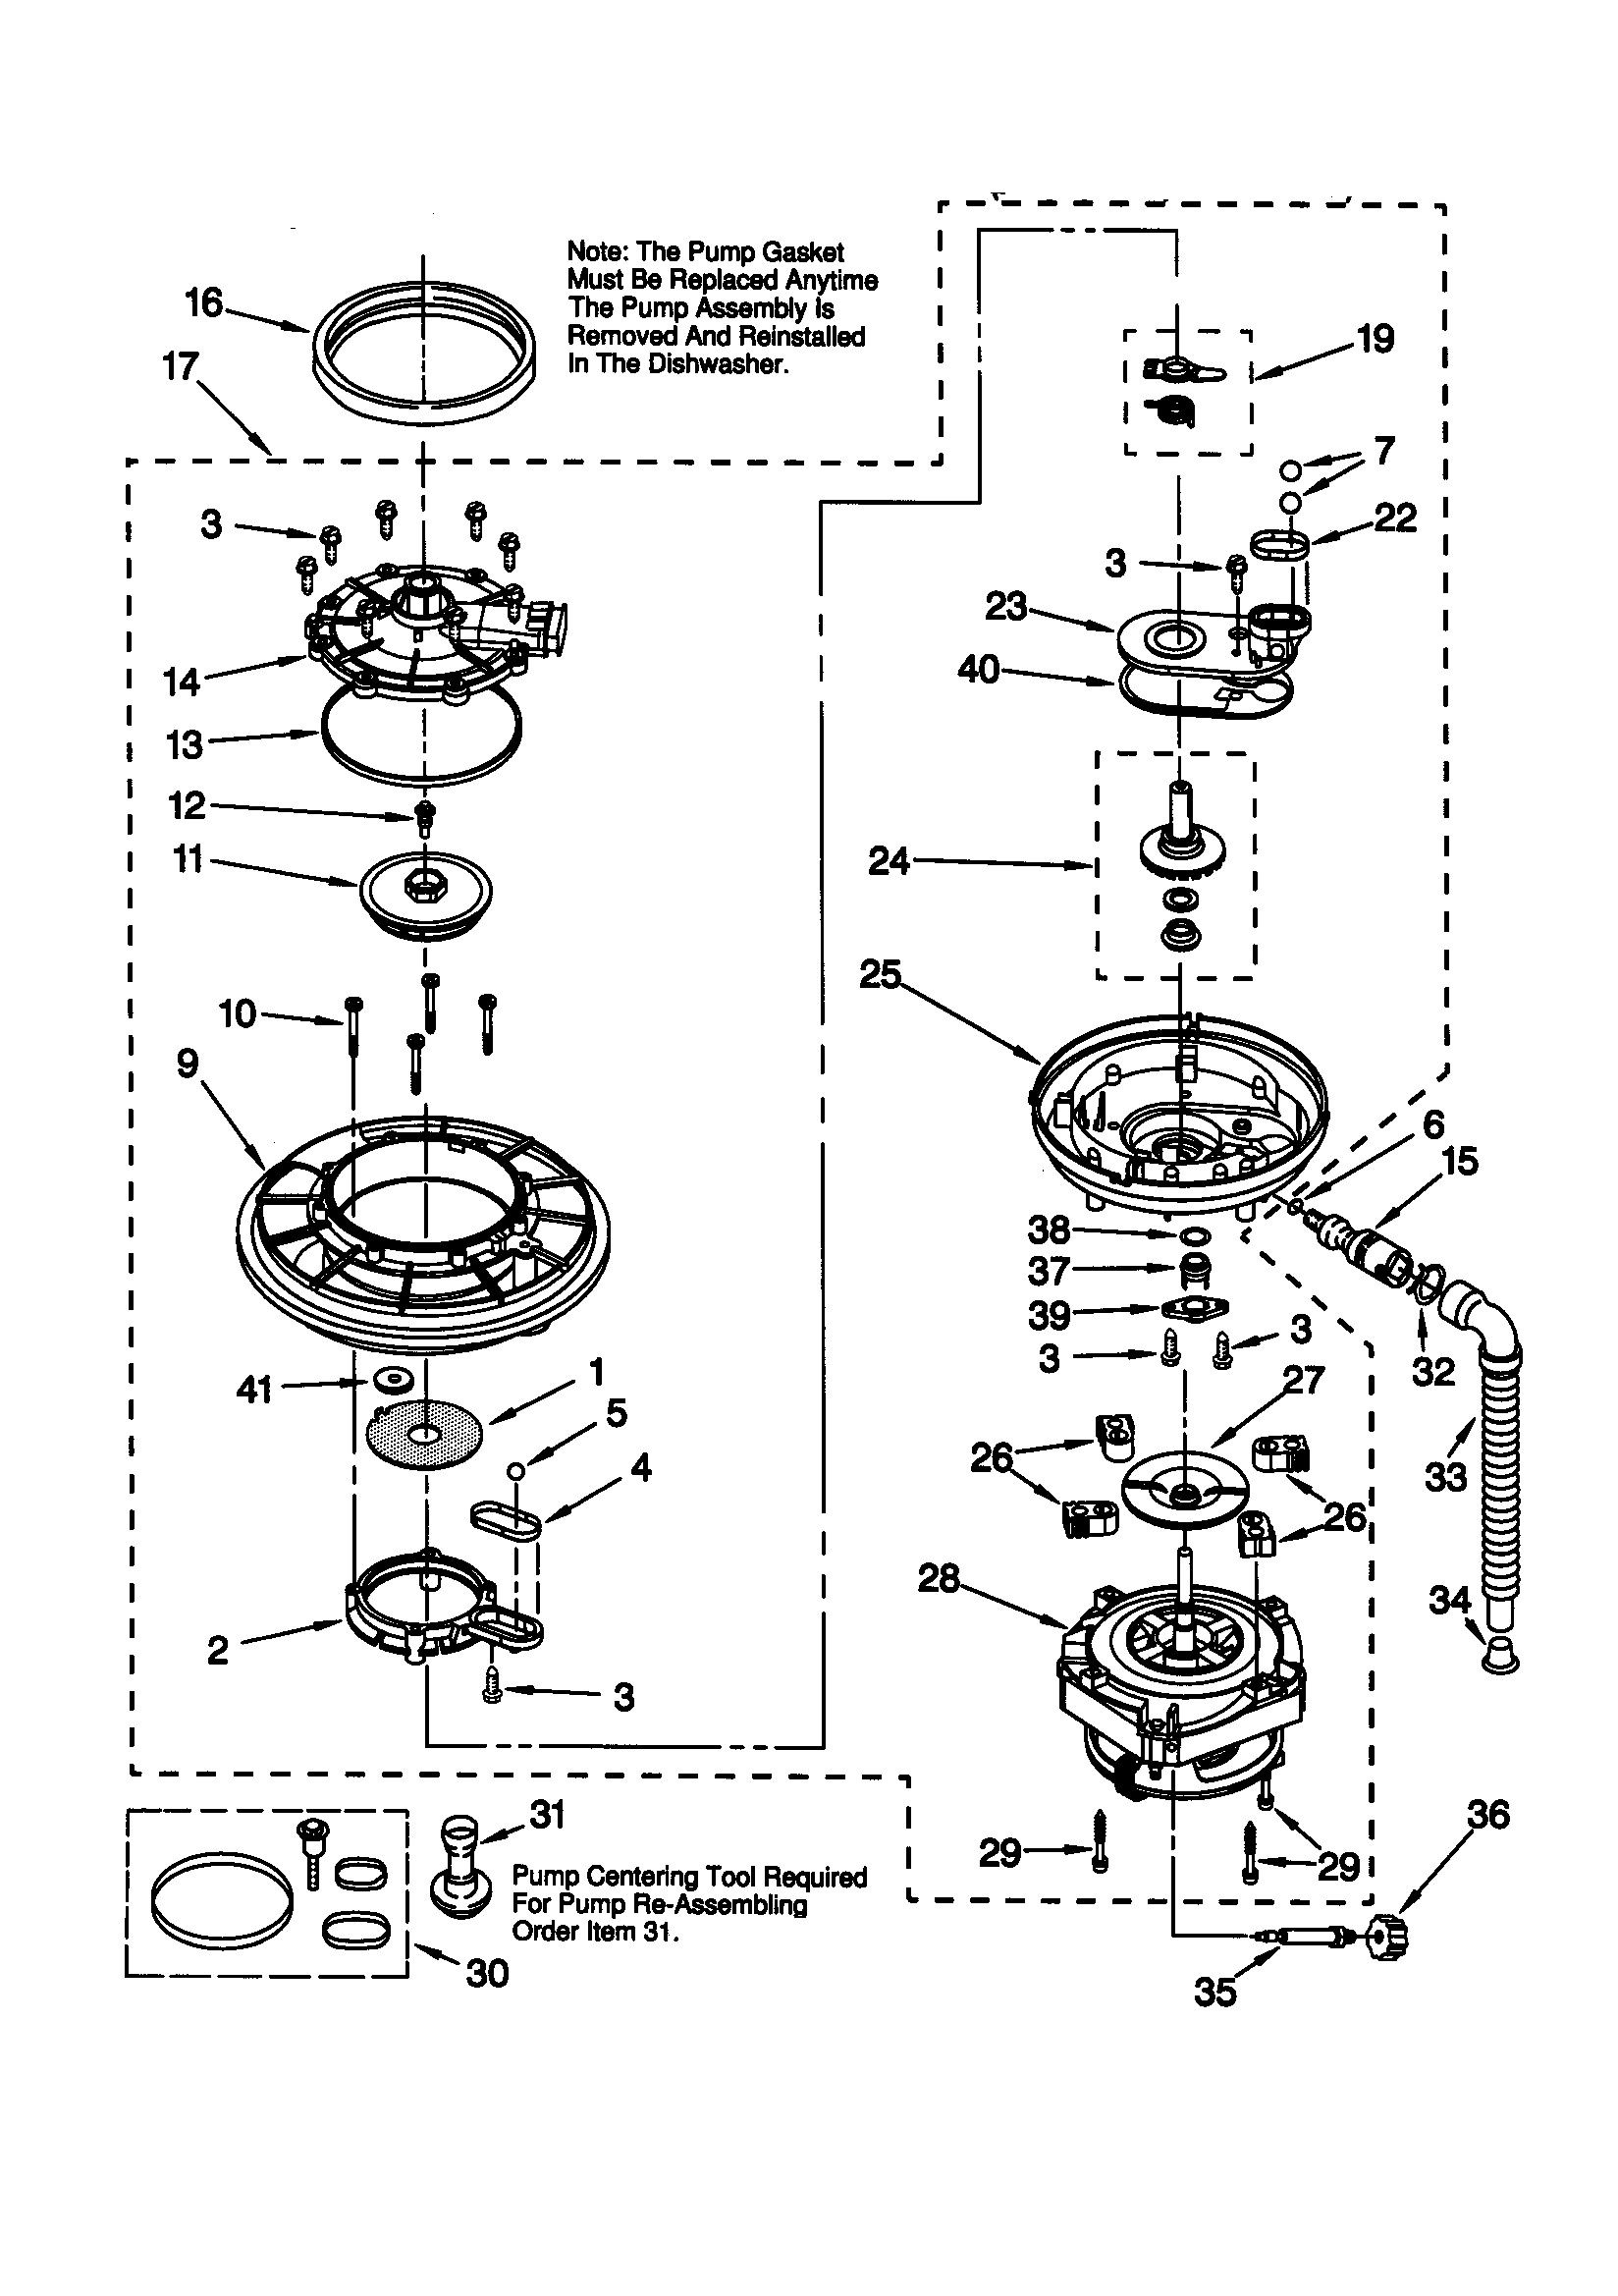 pump and motor parts sample wiring diagrams appliance aid readingrat net Kenmore Front Load Washer Diagram at bakdesigns.co